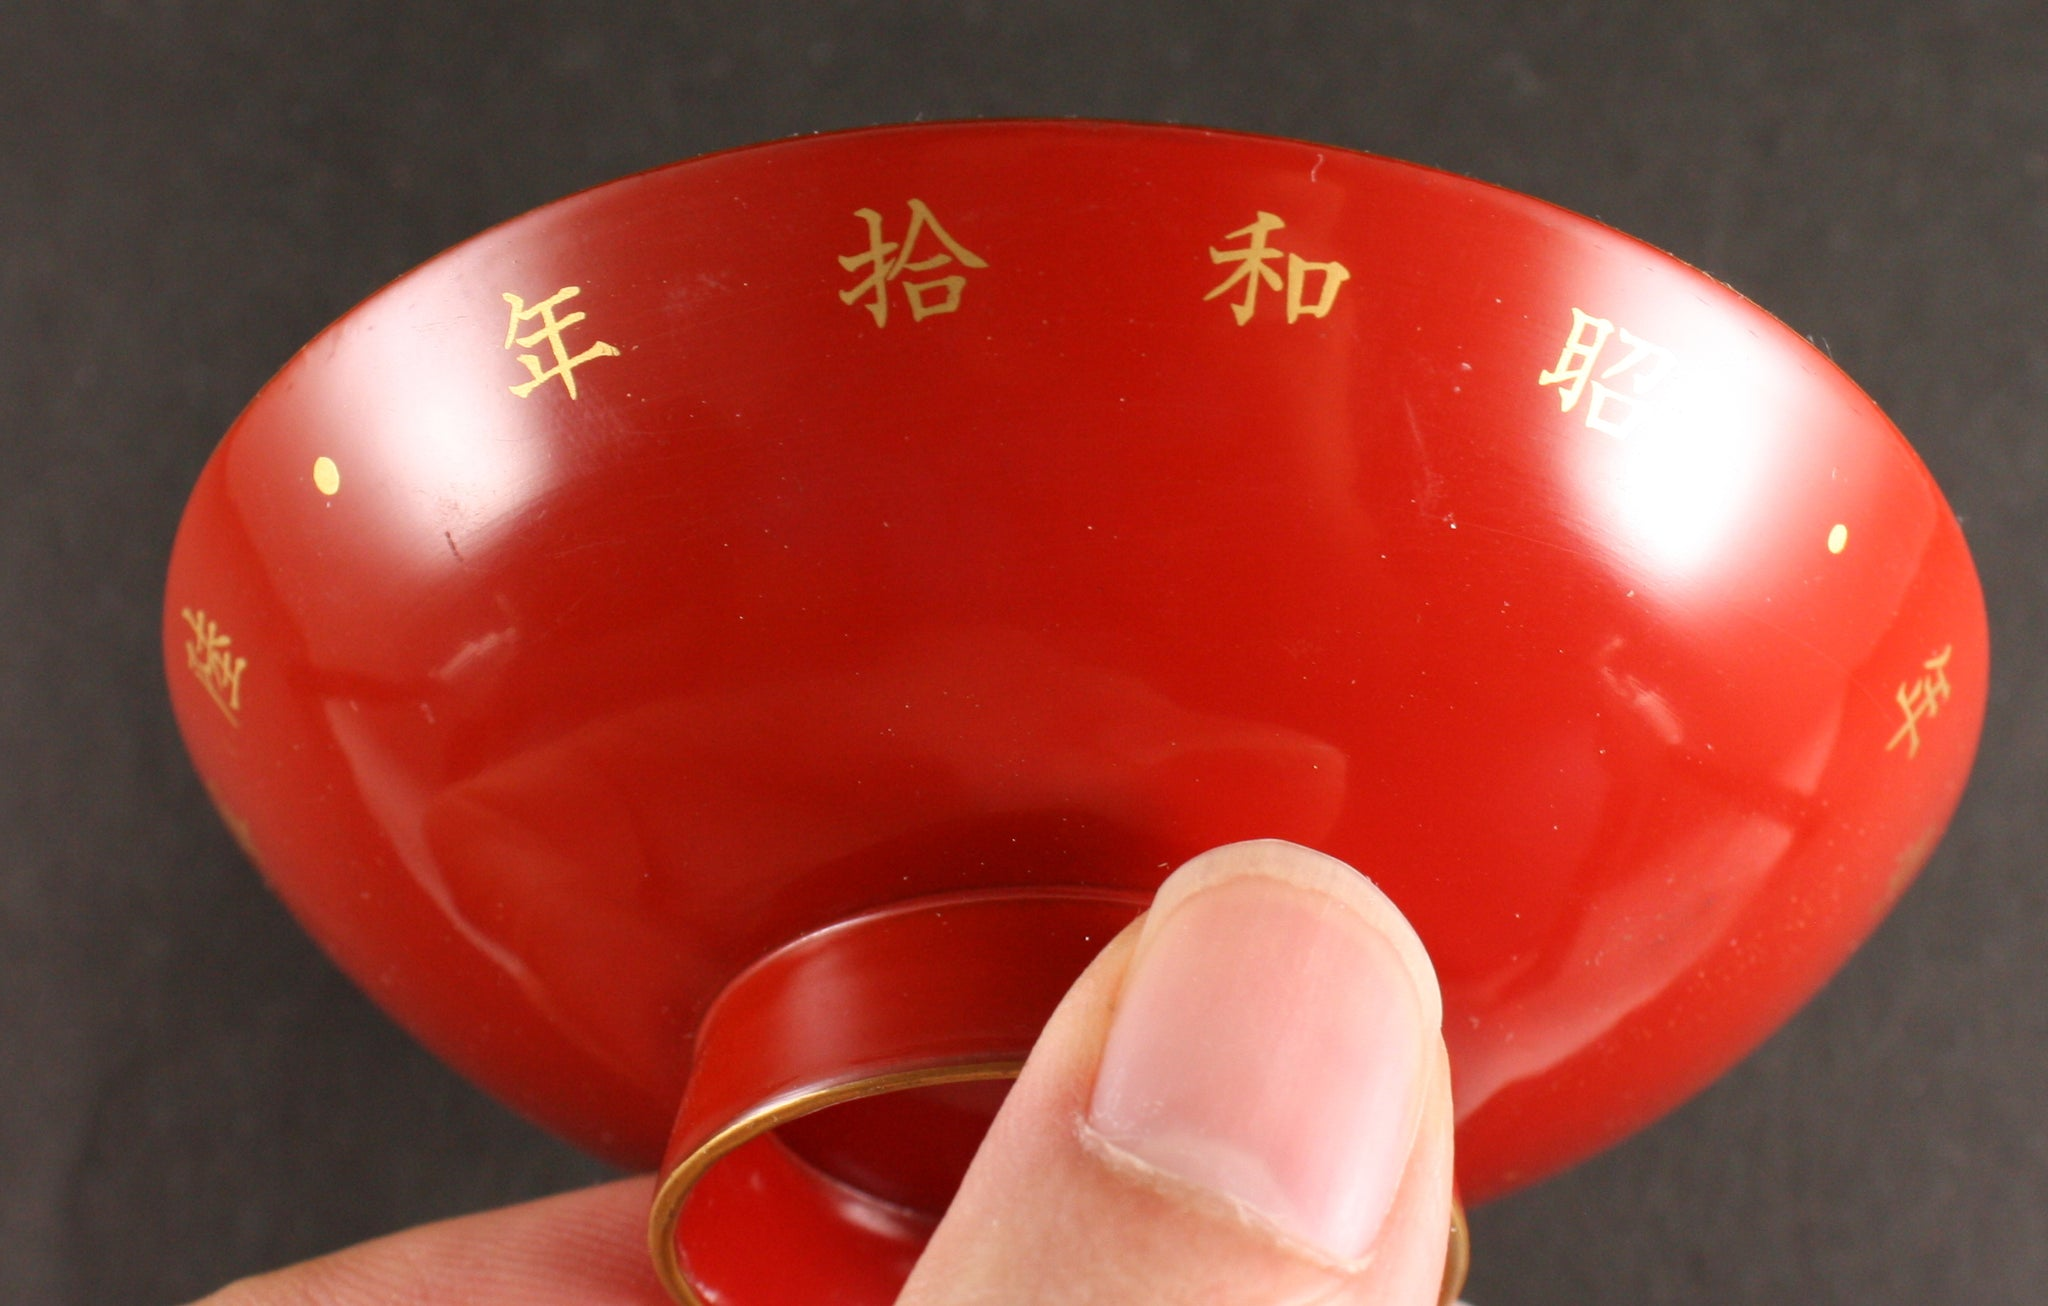 Rare Antique Japanese Military Clothing Factory Establishment Commemoration Lacquer Sake Cup